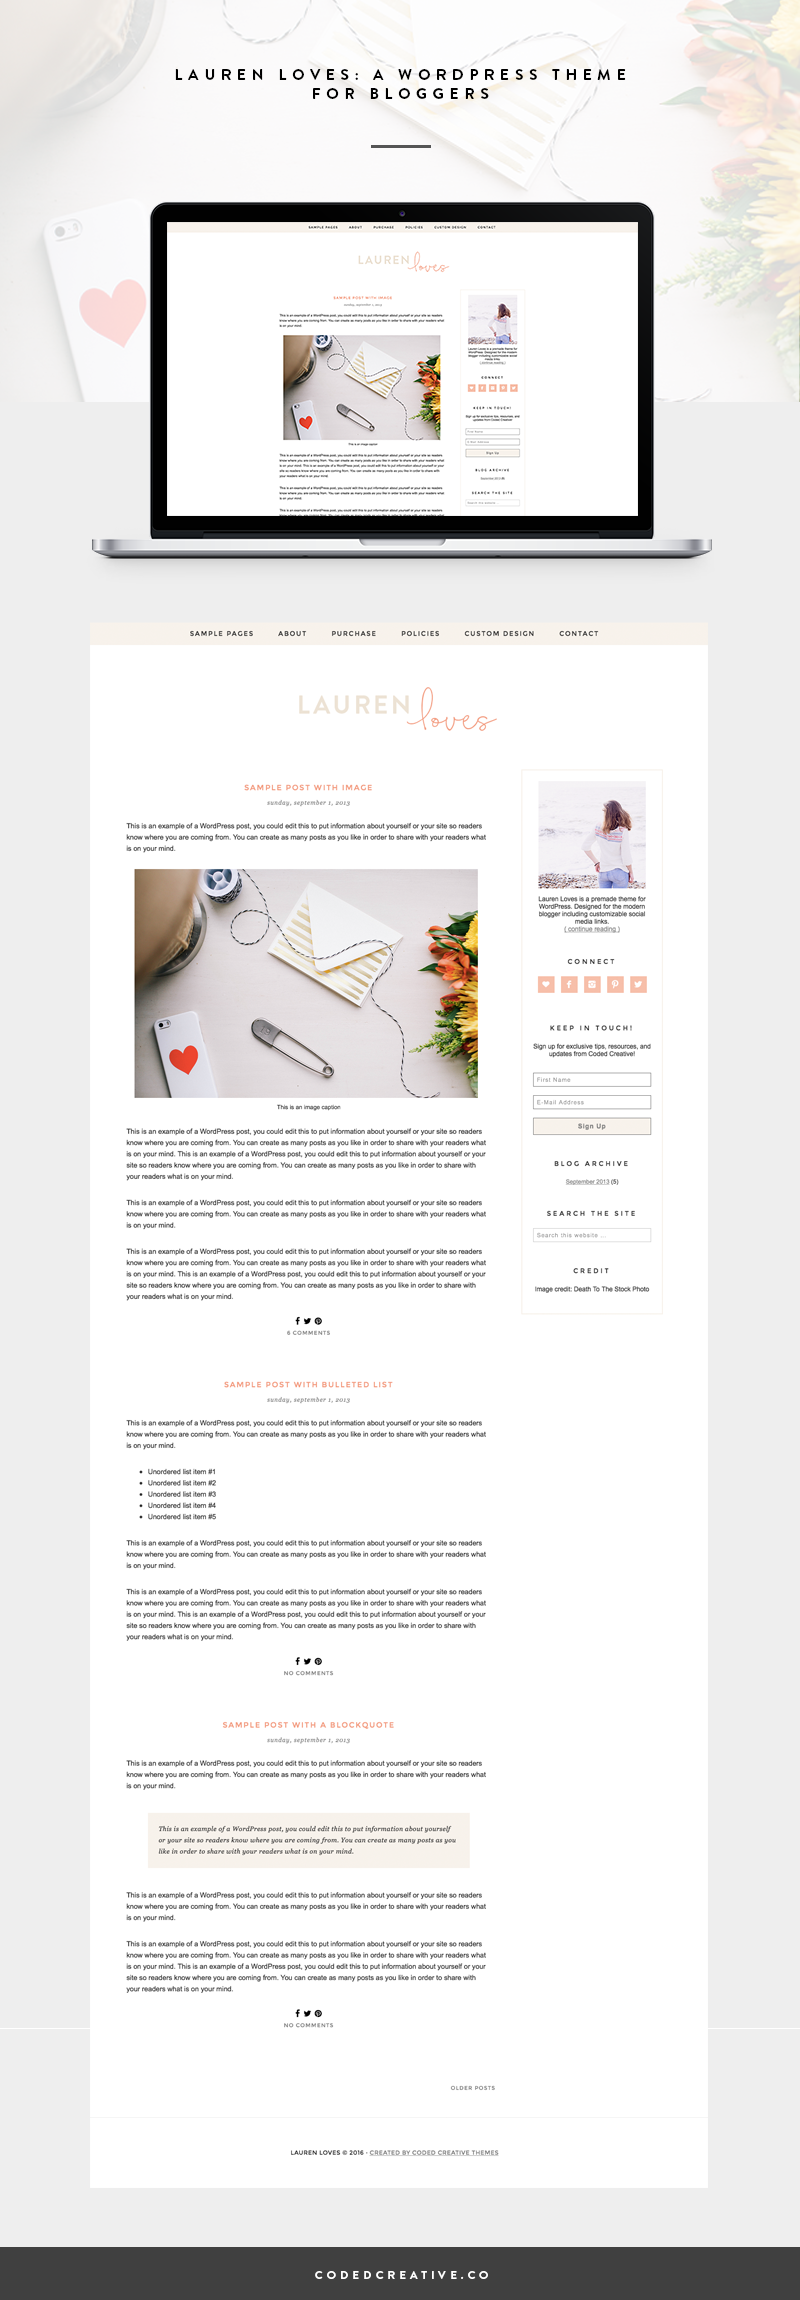 Lauren Loves is a feminine and simple blog template created for the WordPress platform. The header and blog design features nude and peach colors as well as sans serif and script fonts. Lauren Loves is the perfect template for the new blogger looking to get an upgraded look on a budget.